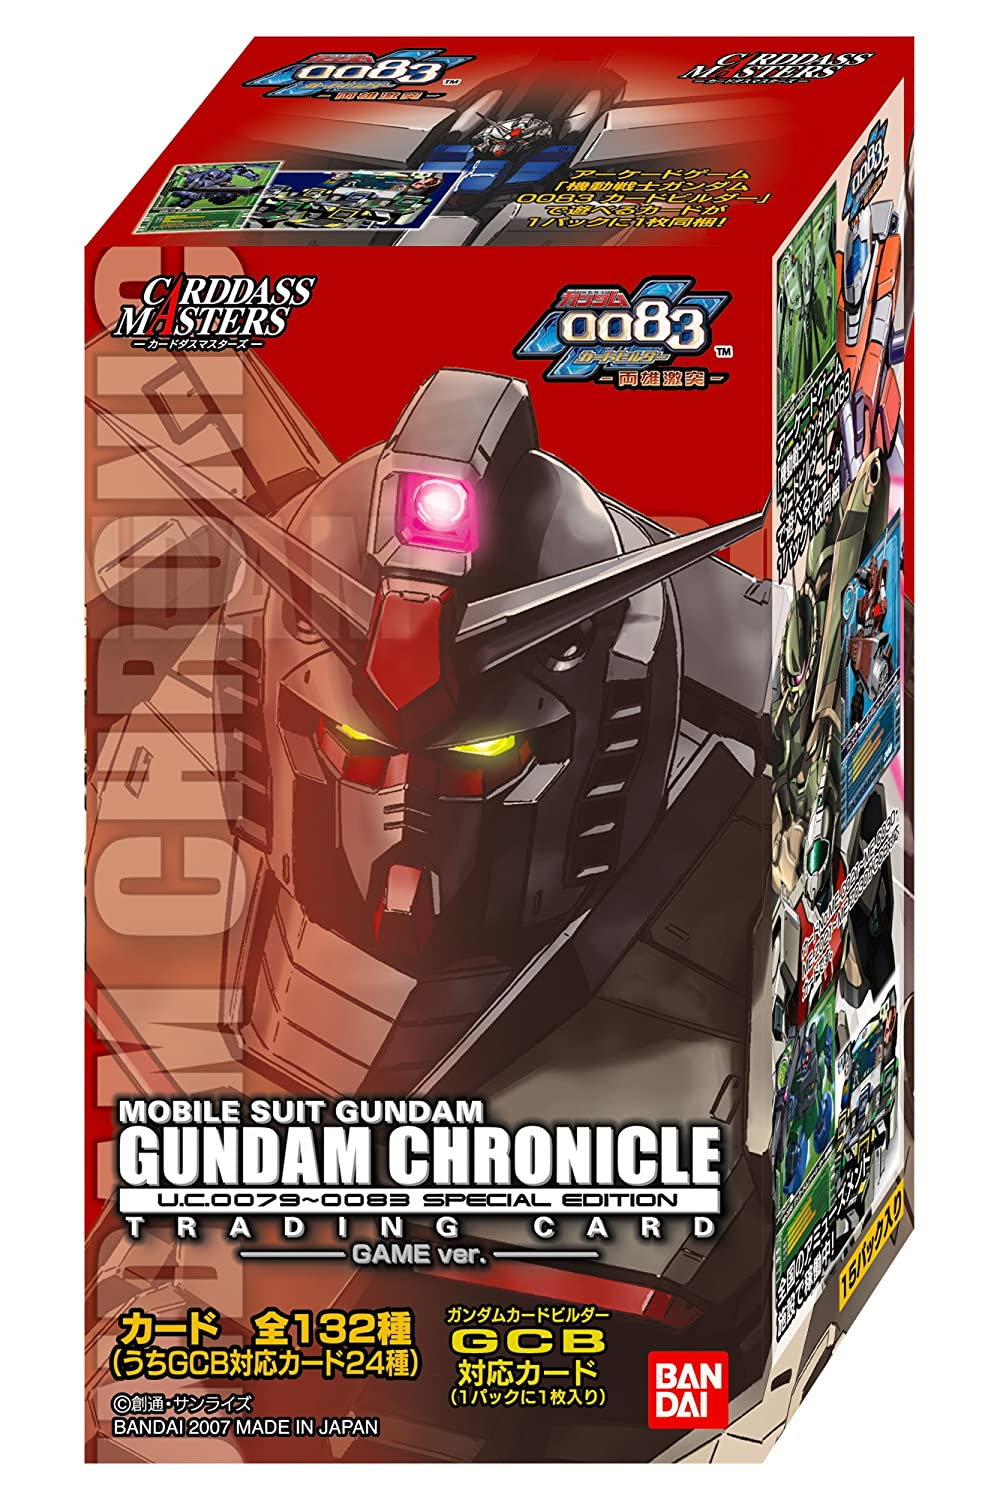 Carddas Masters Gundam Chronicle UC0079  0083 SPECIAL EDITION GAME Version BOX (japan import)